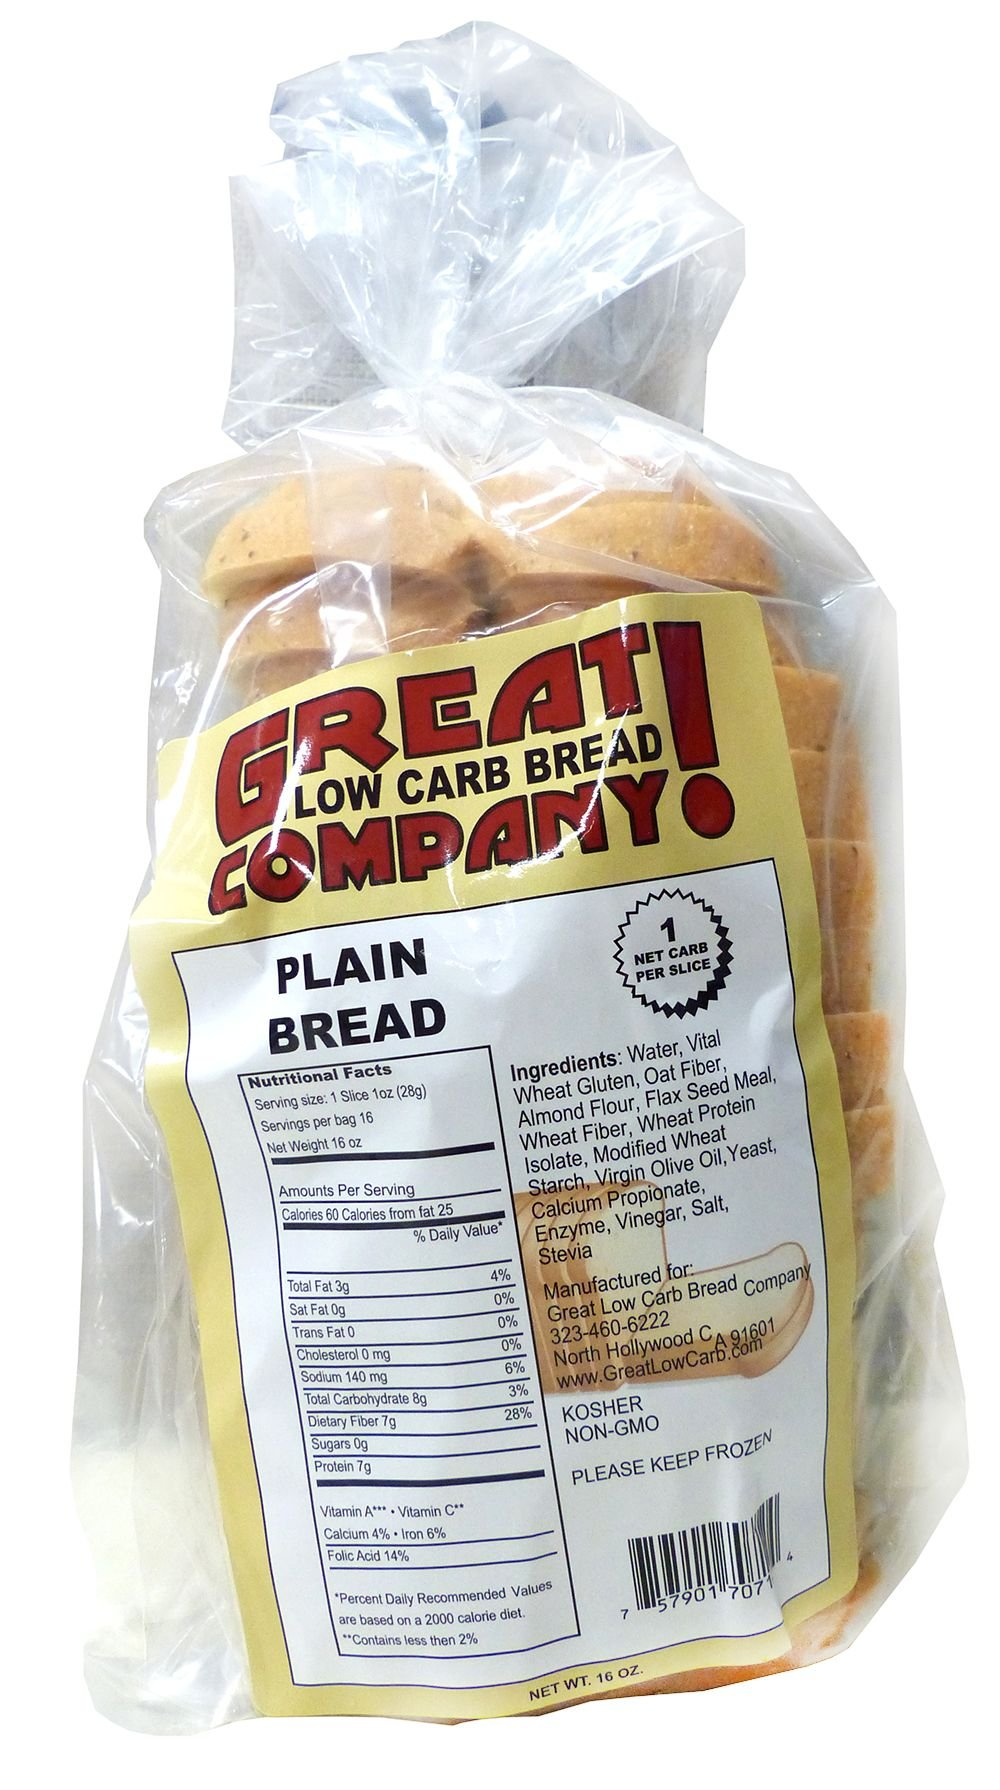 Great Low Carb Thin Sliced Plain Bread X2 Loaves by Great Low Carb Bread Company